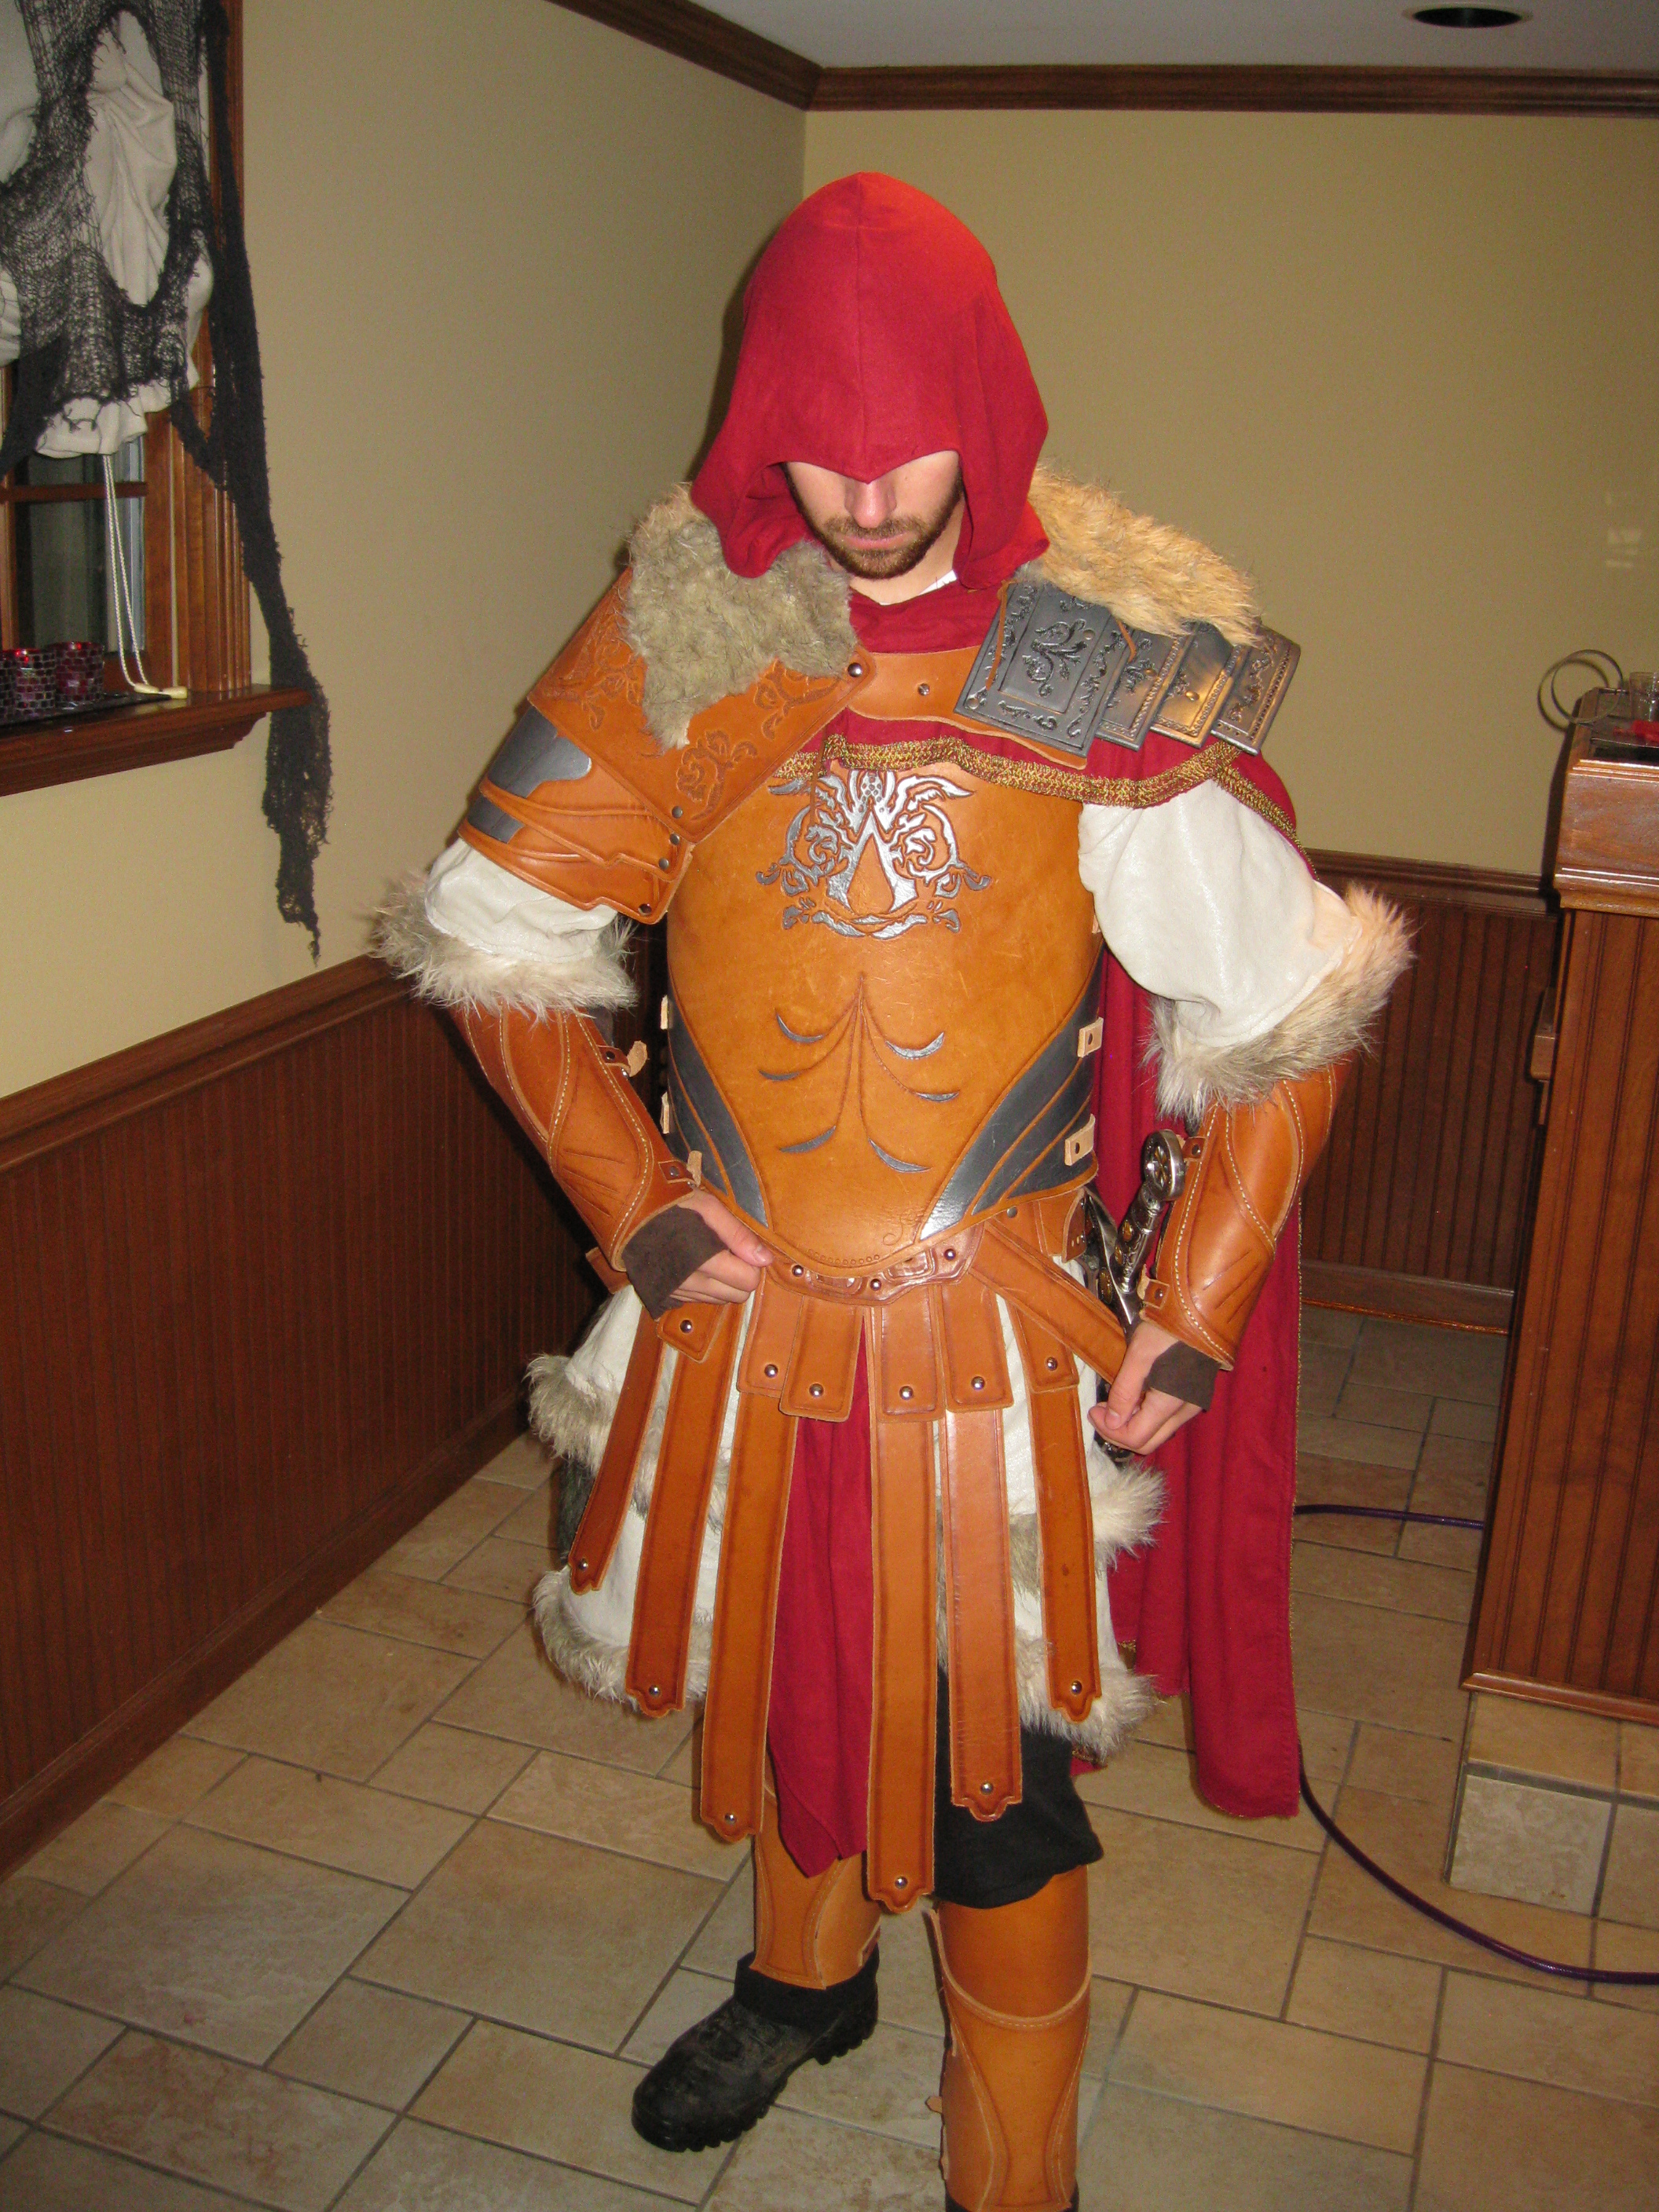 Ezio Auditore Armor Of Brutus Rpf Costume And Prop Maker Community